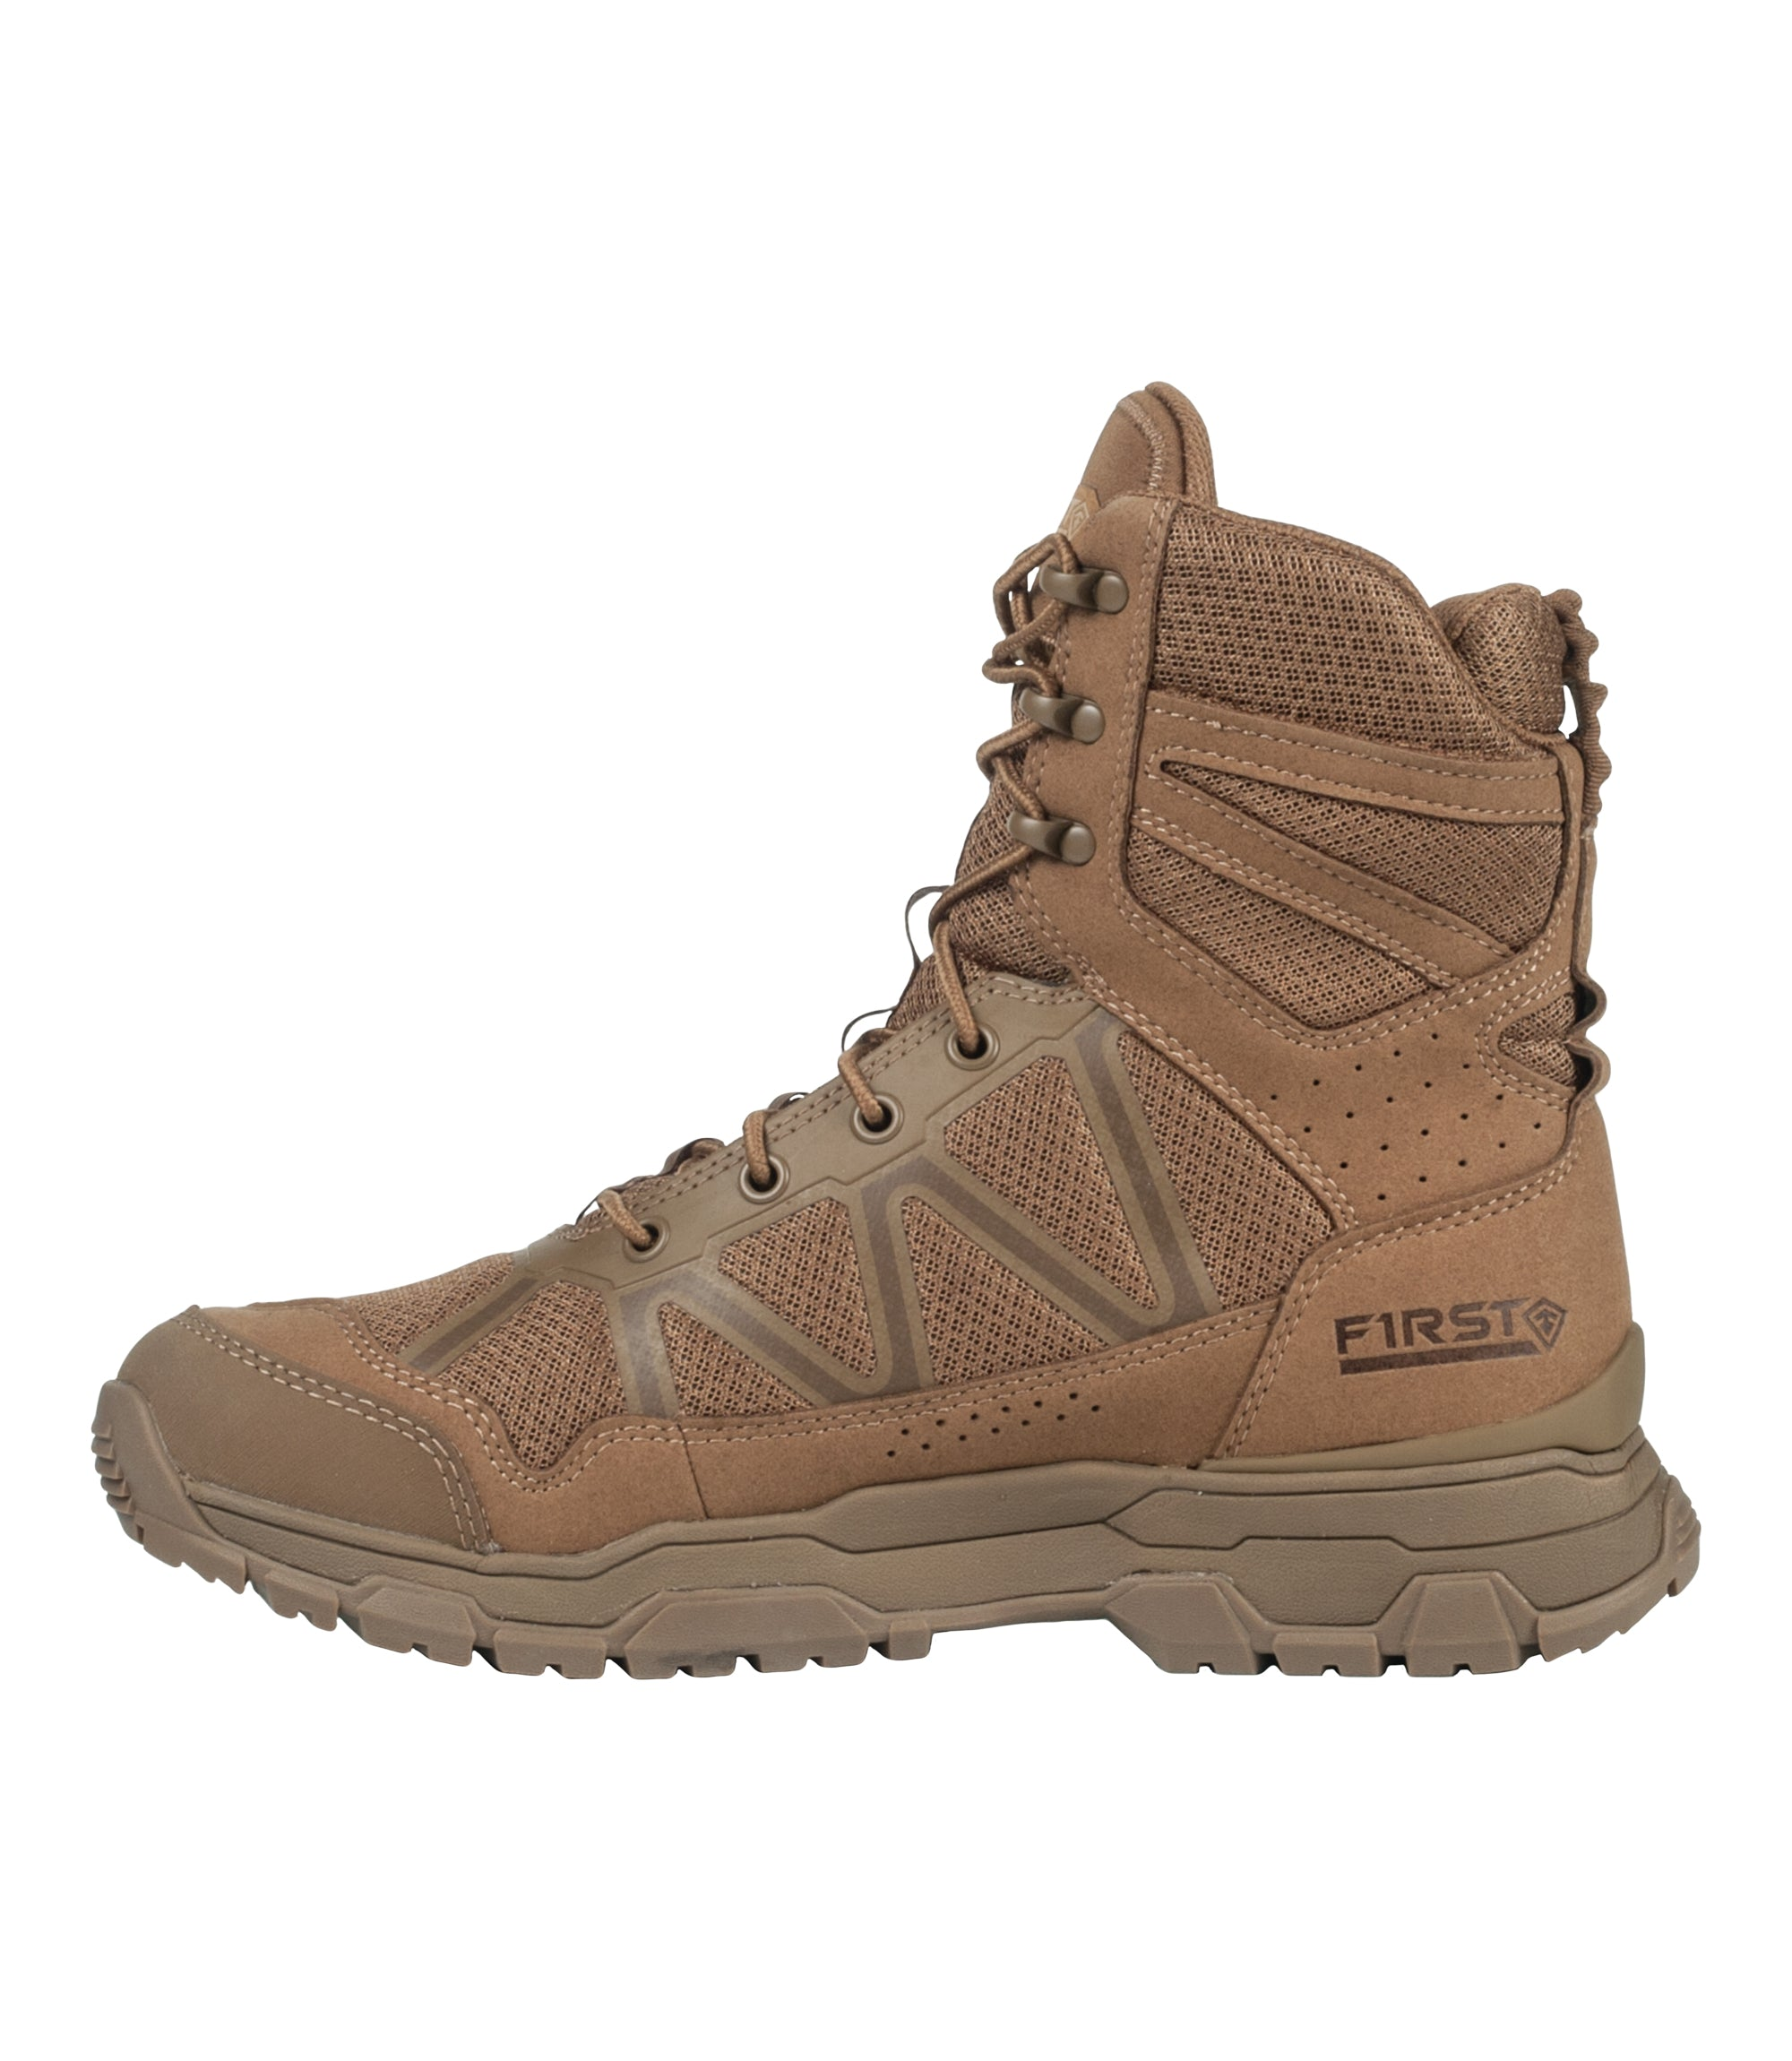 boot footwear waterproof gb storm comfortable comforter gre hiking wms mountain womens warehouse most walking boots